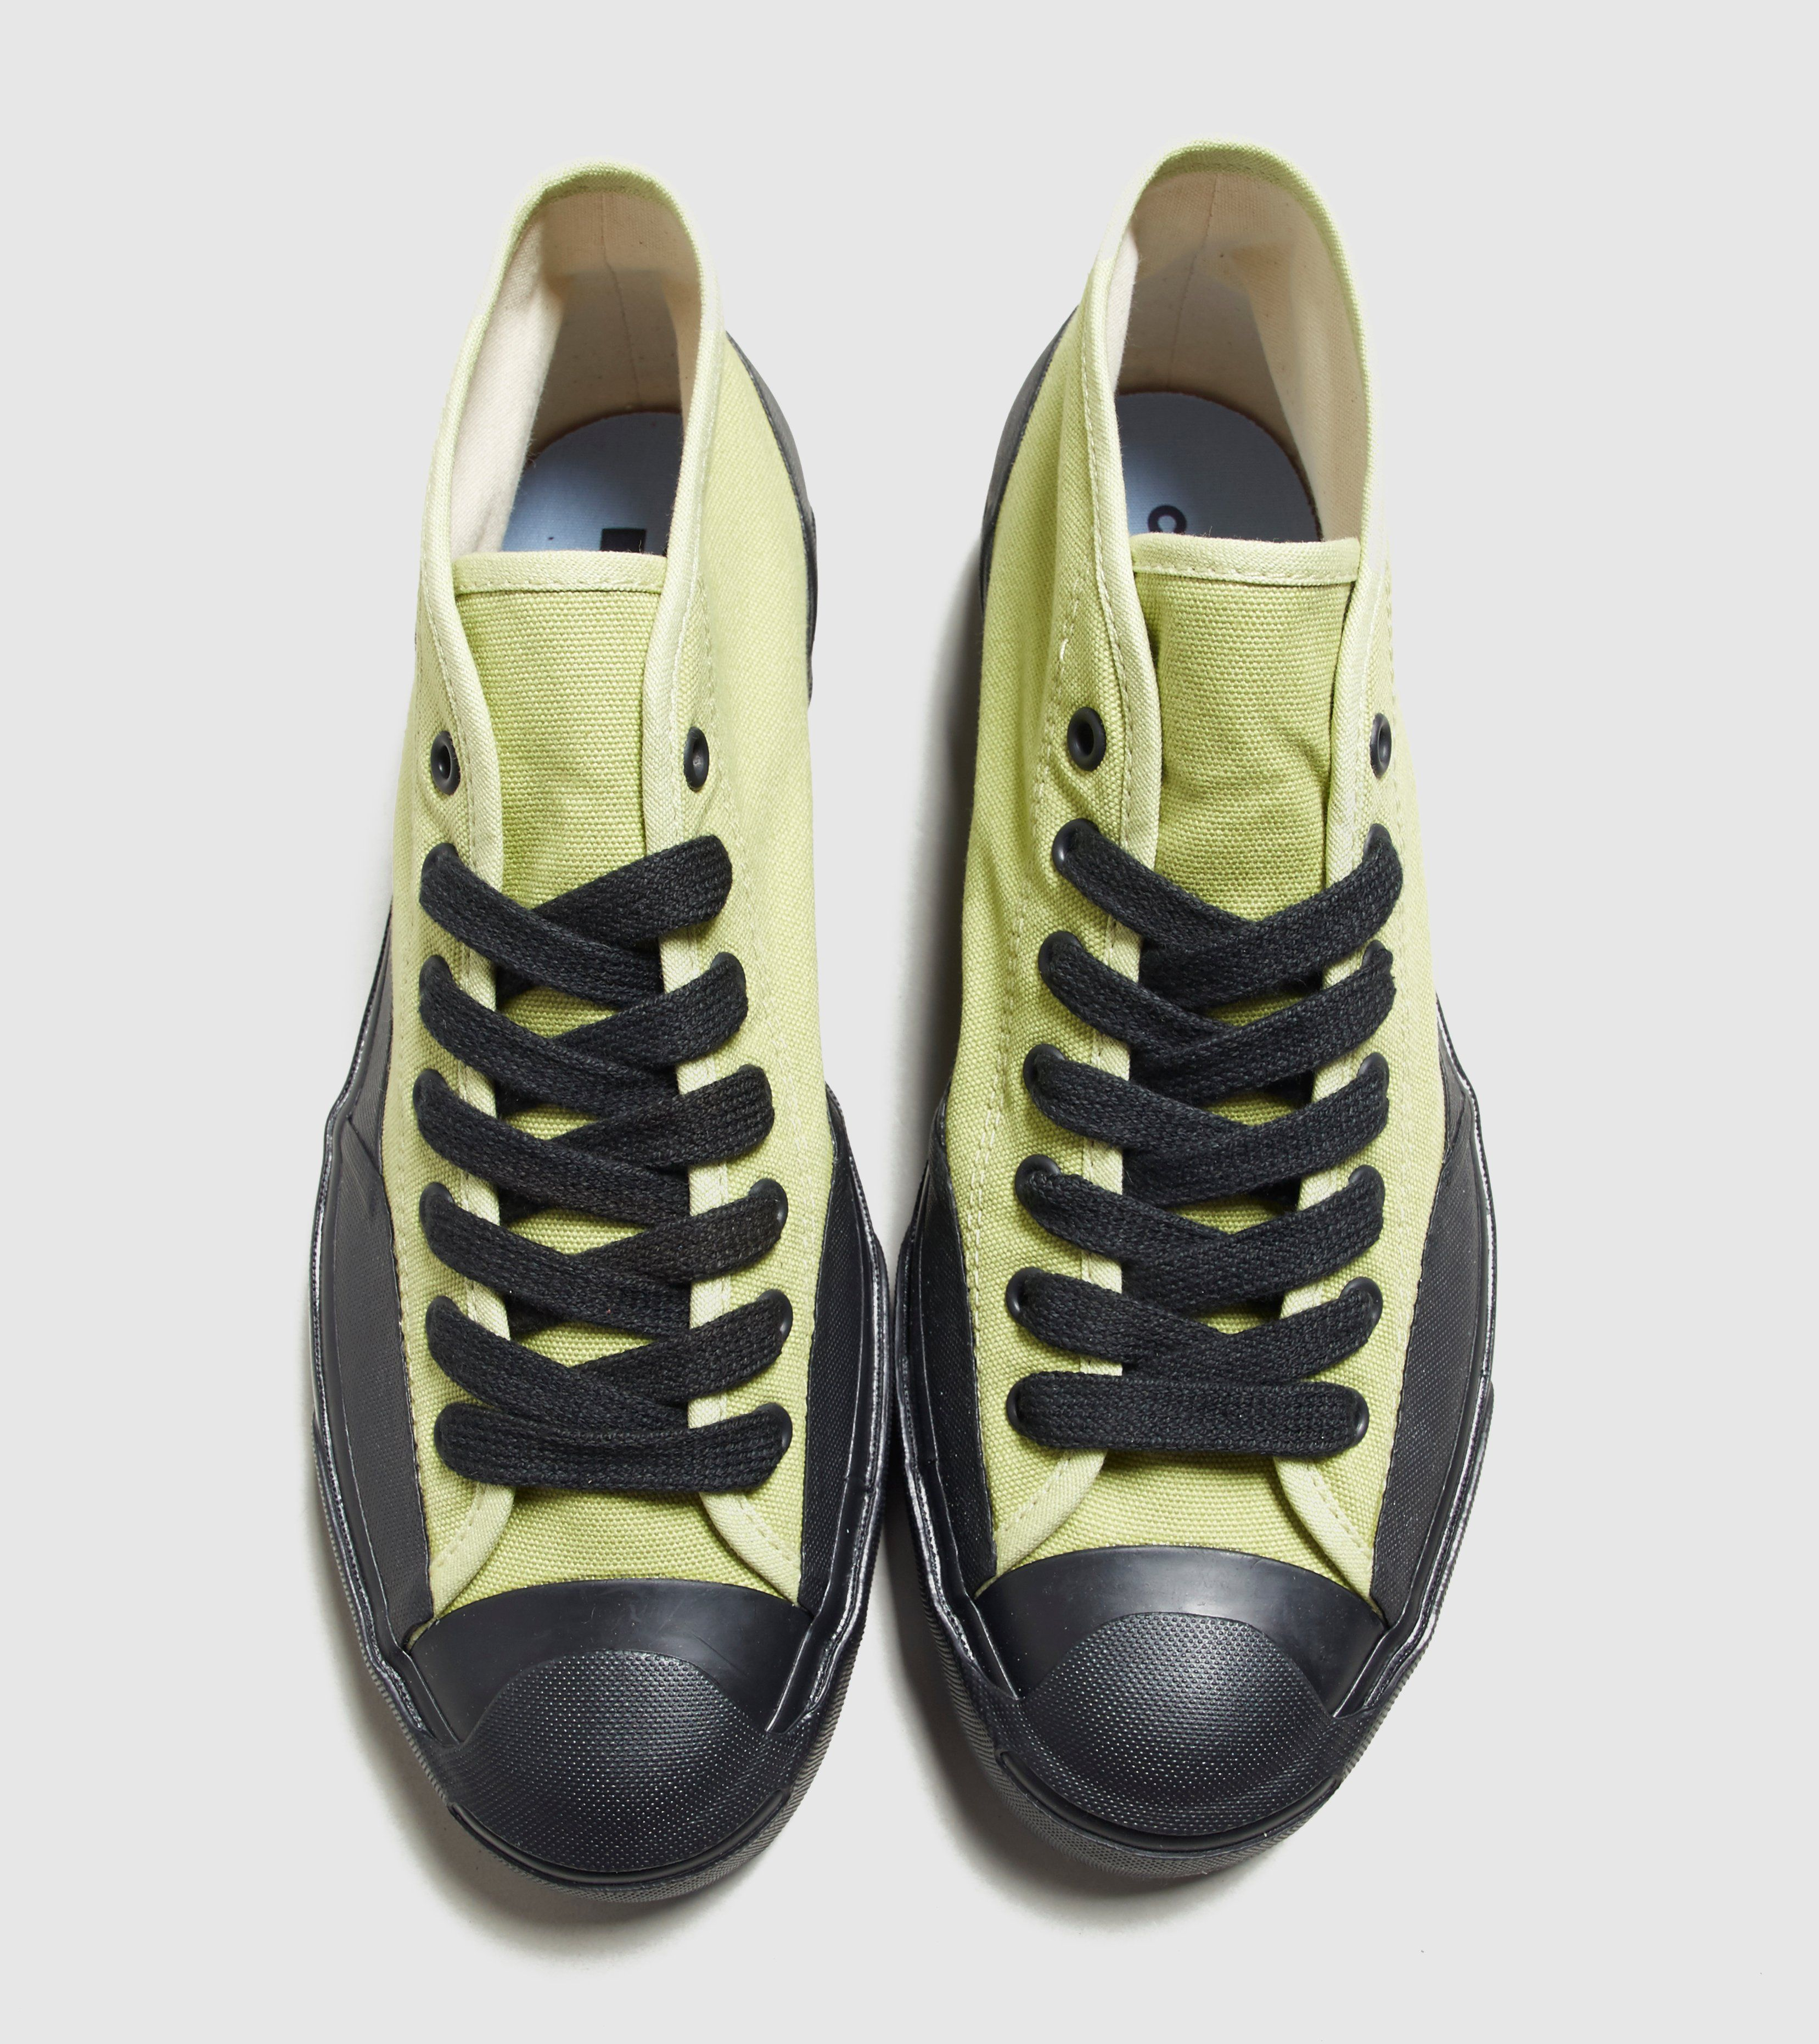 Converse x A$AP Nast Jack Purcell